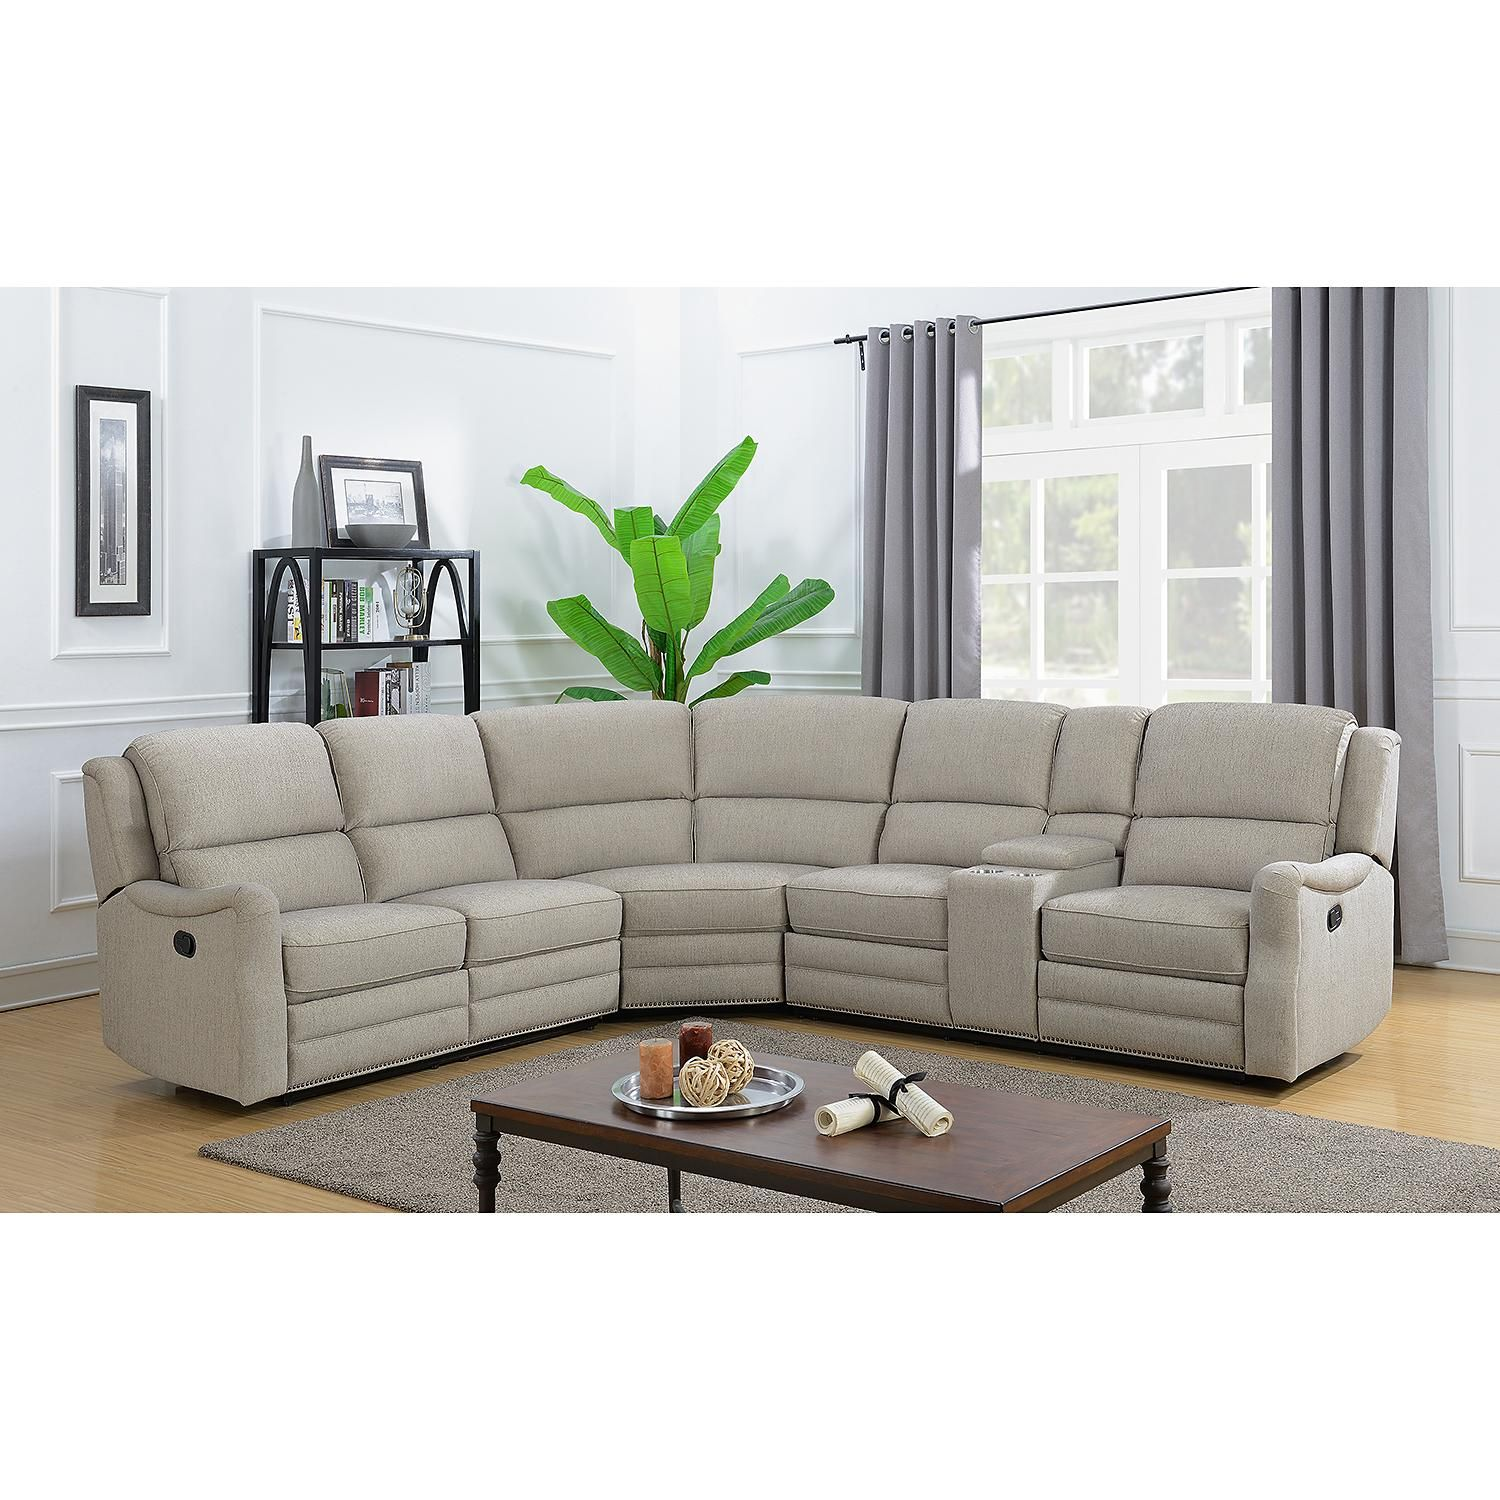 Emma 3 Piece Reclining Sectional In